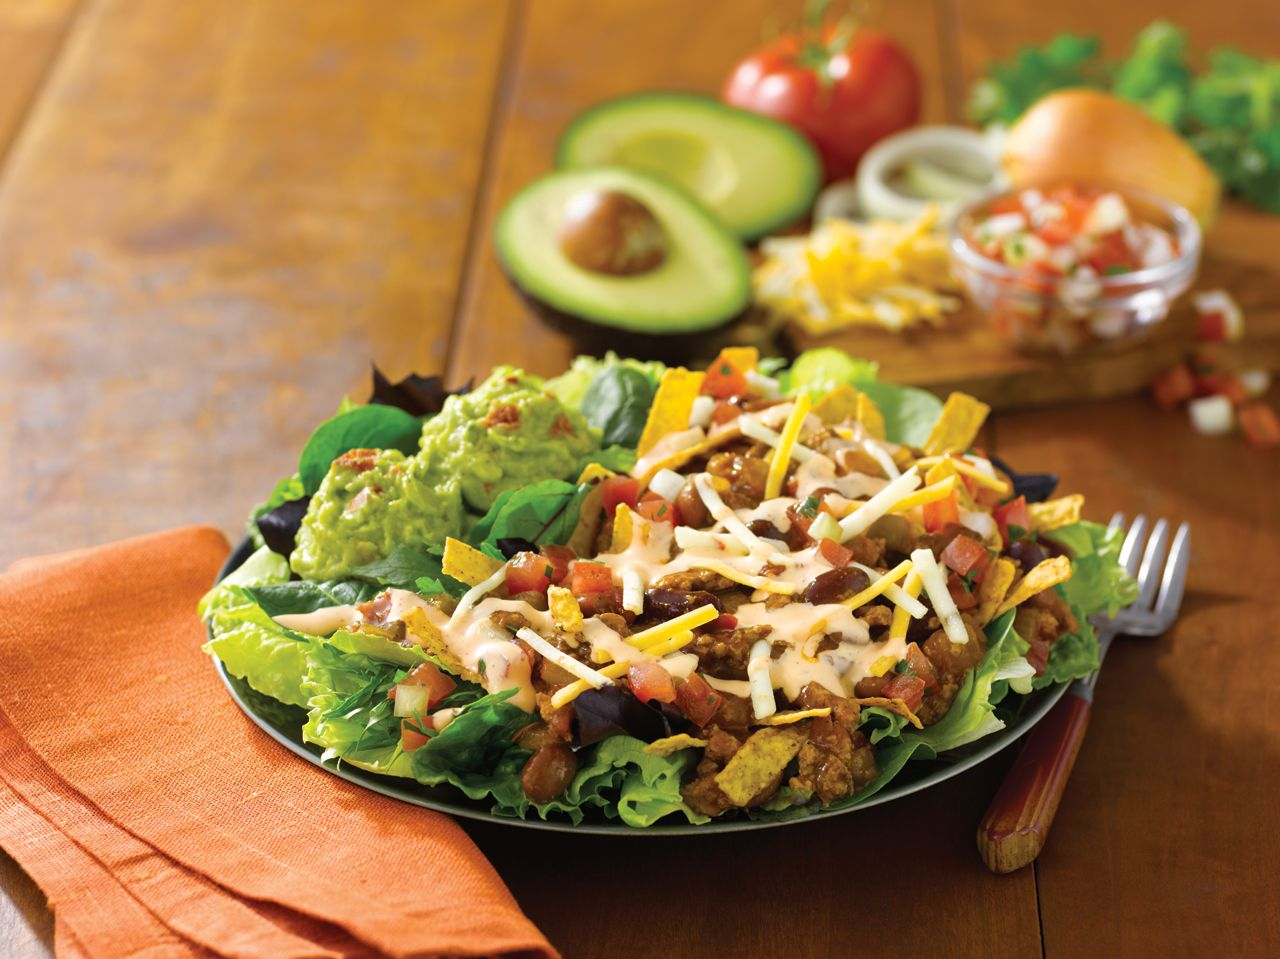 A little Southwest spice. Food, Recipes, Healthy recipes